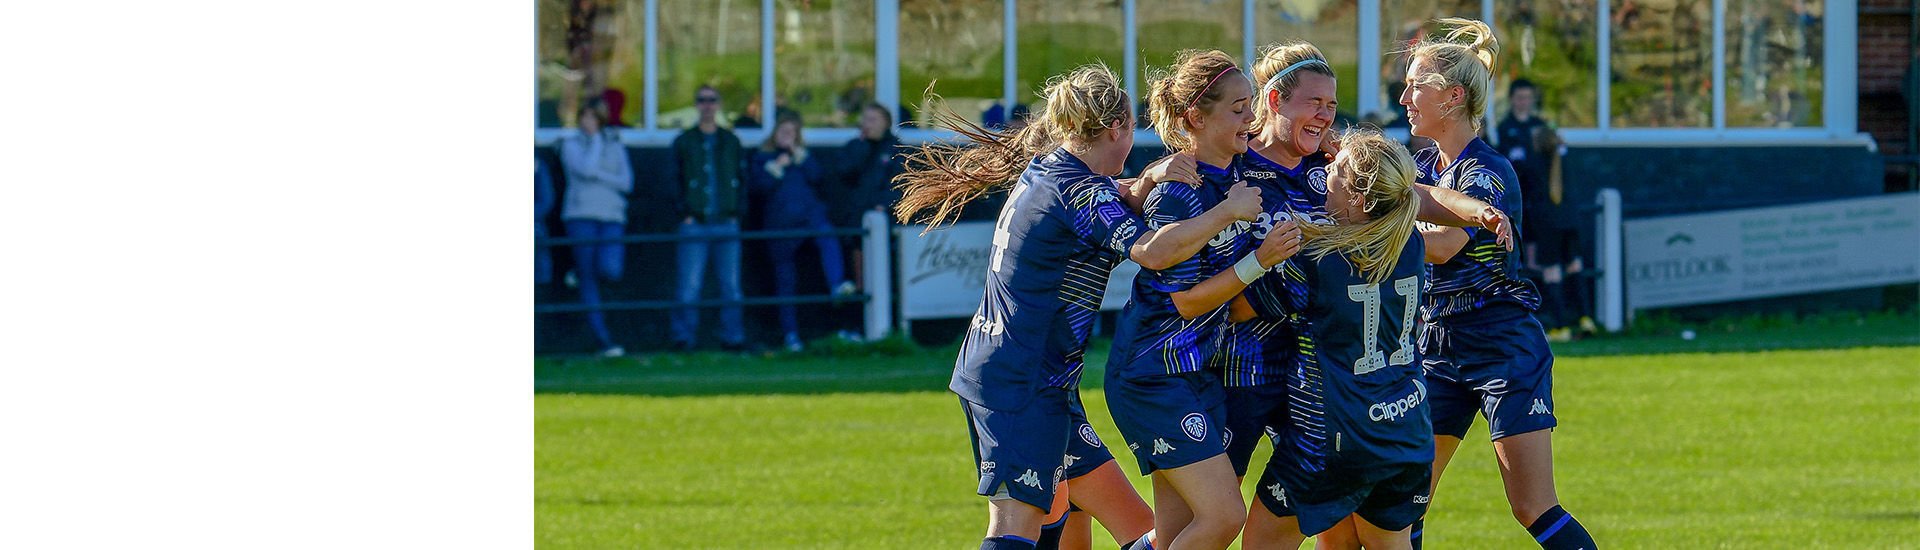 LEEDS LADIES FLYING WITH 3-1 WIN OVER MAGPIES